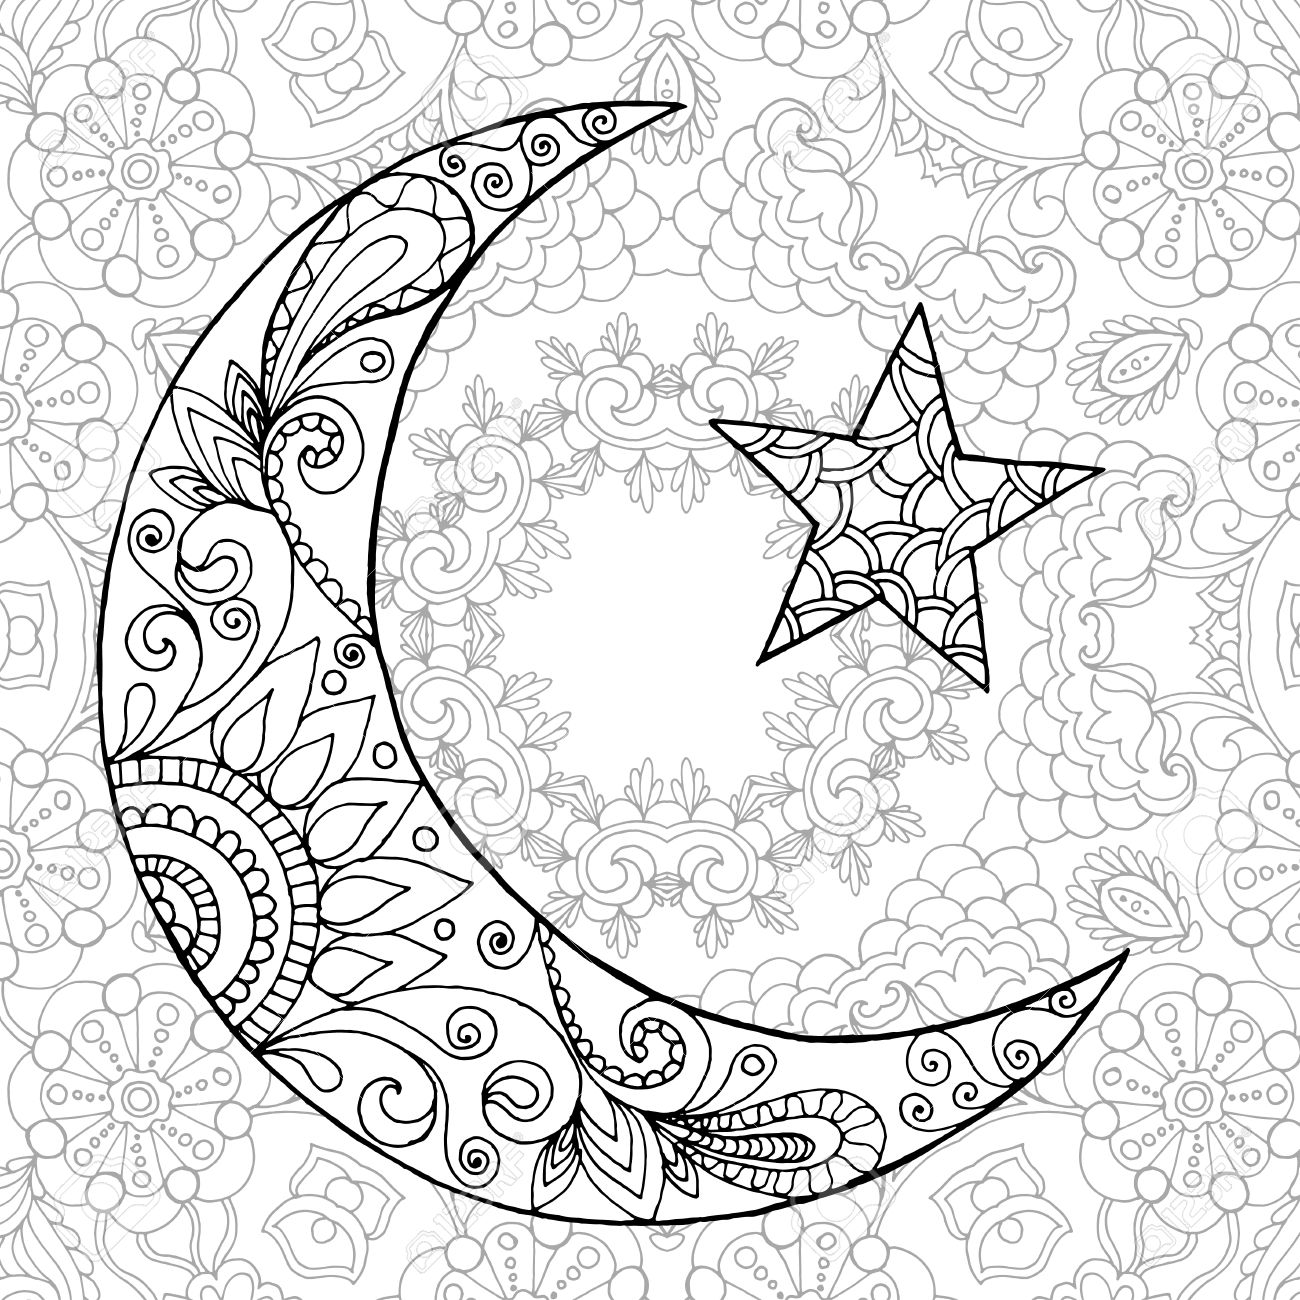 goodnight moon coloring pages goodnight moon coloring page